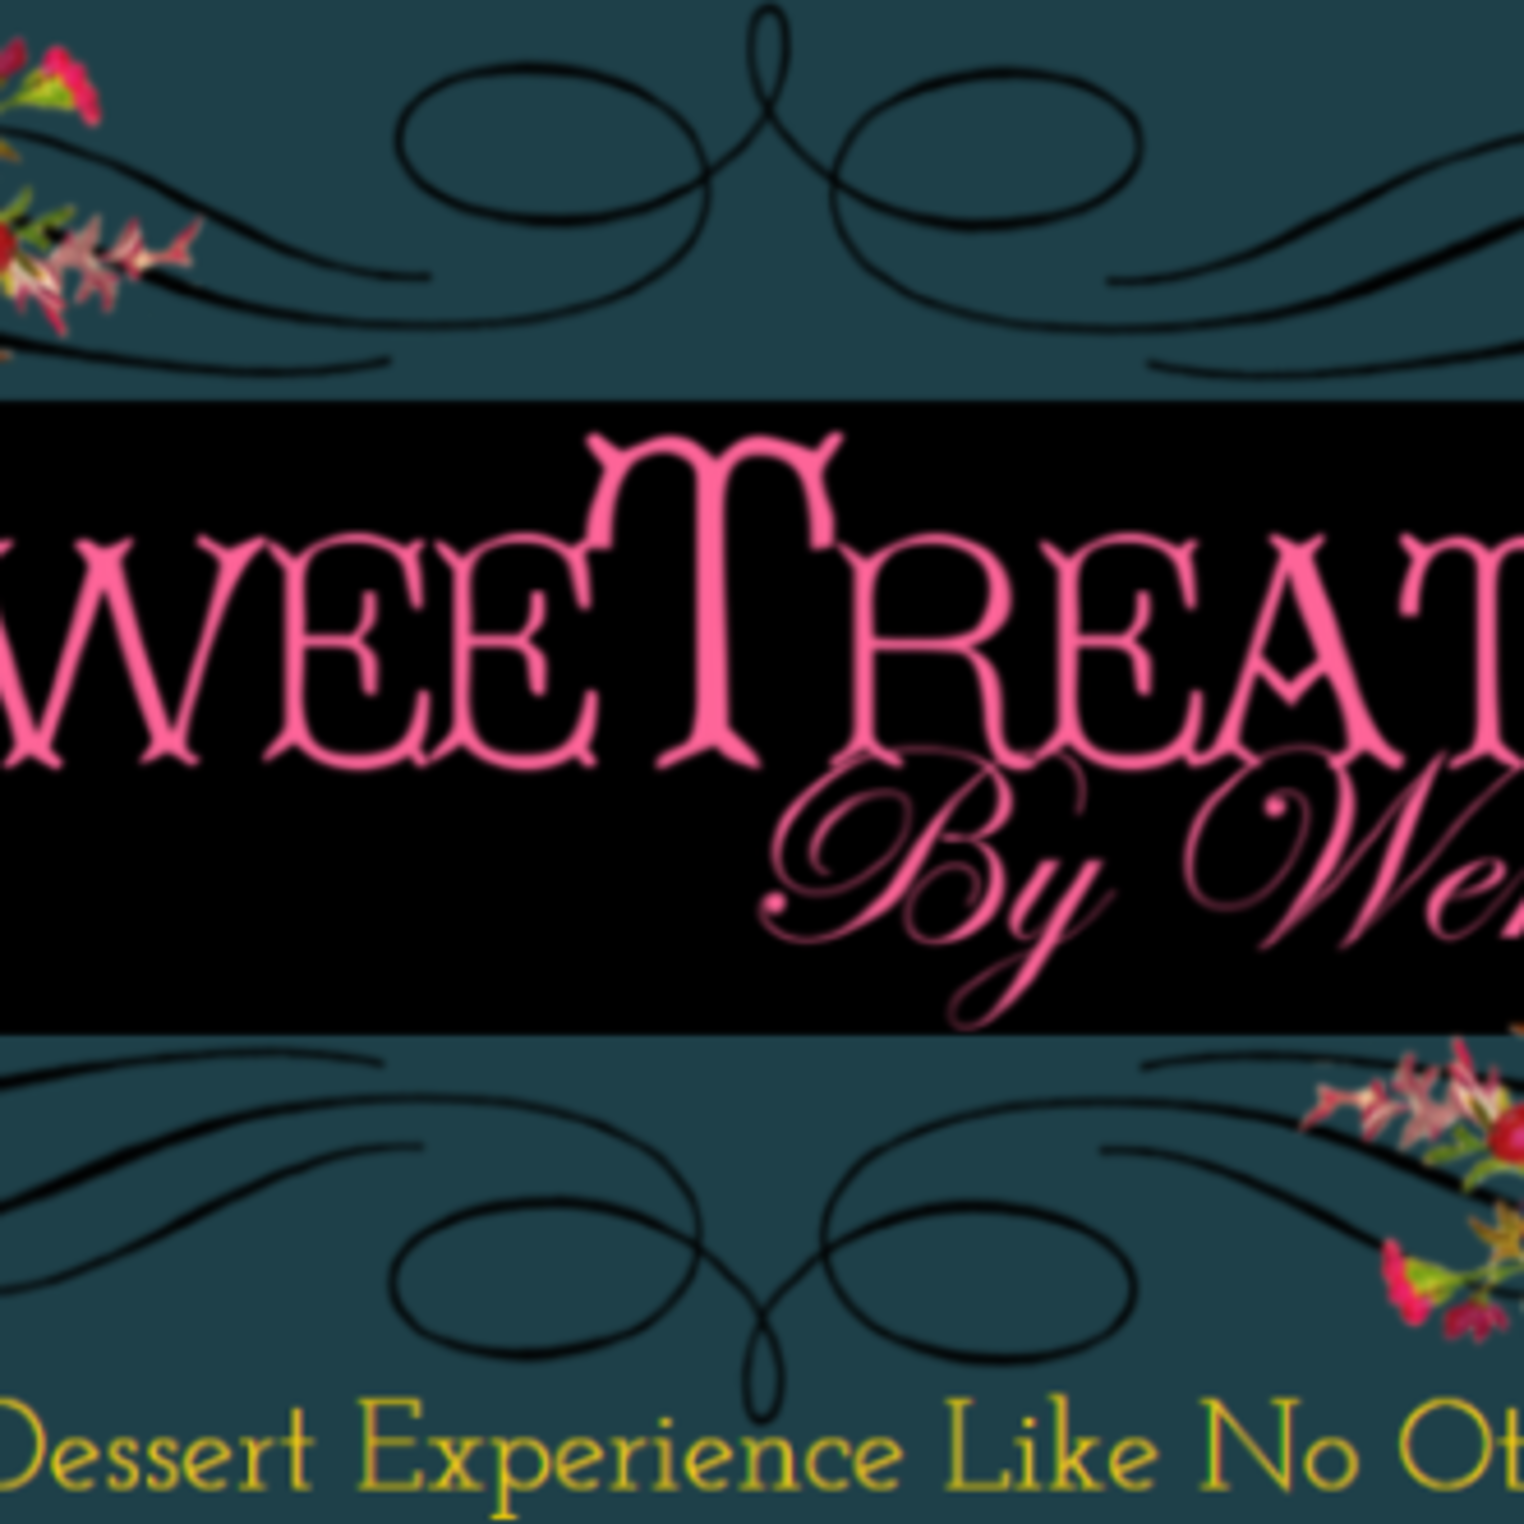 SweeTreats Cake Boutique